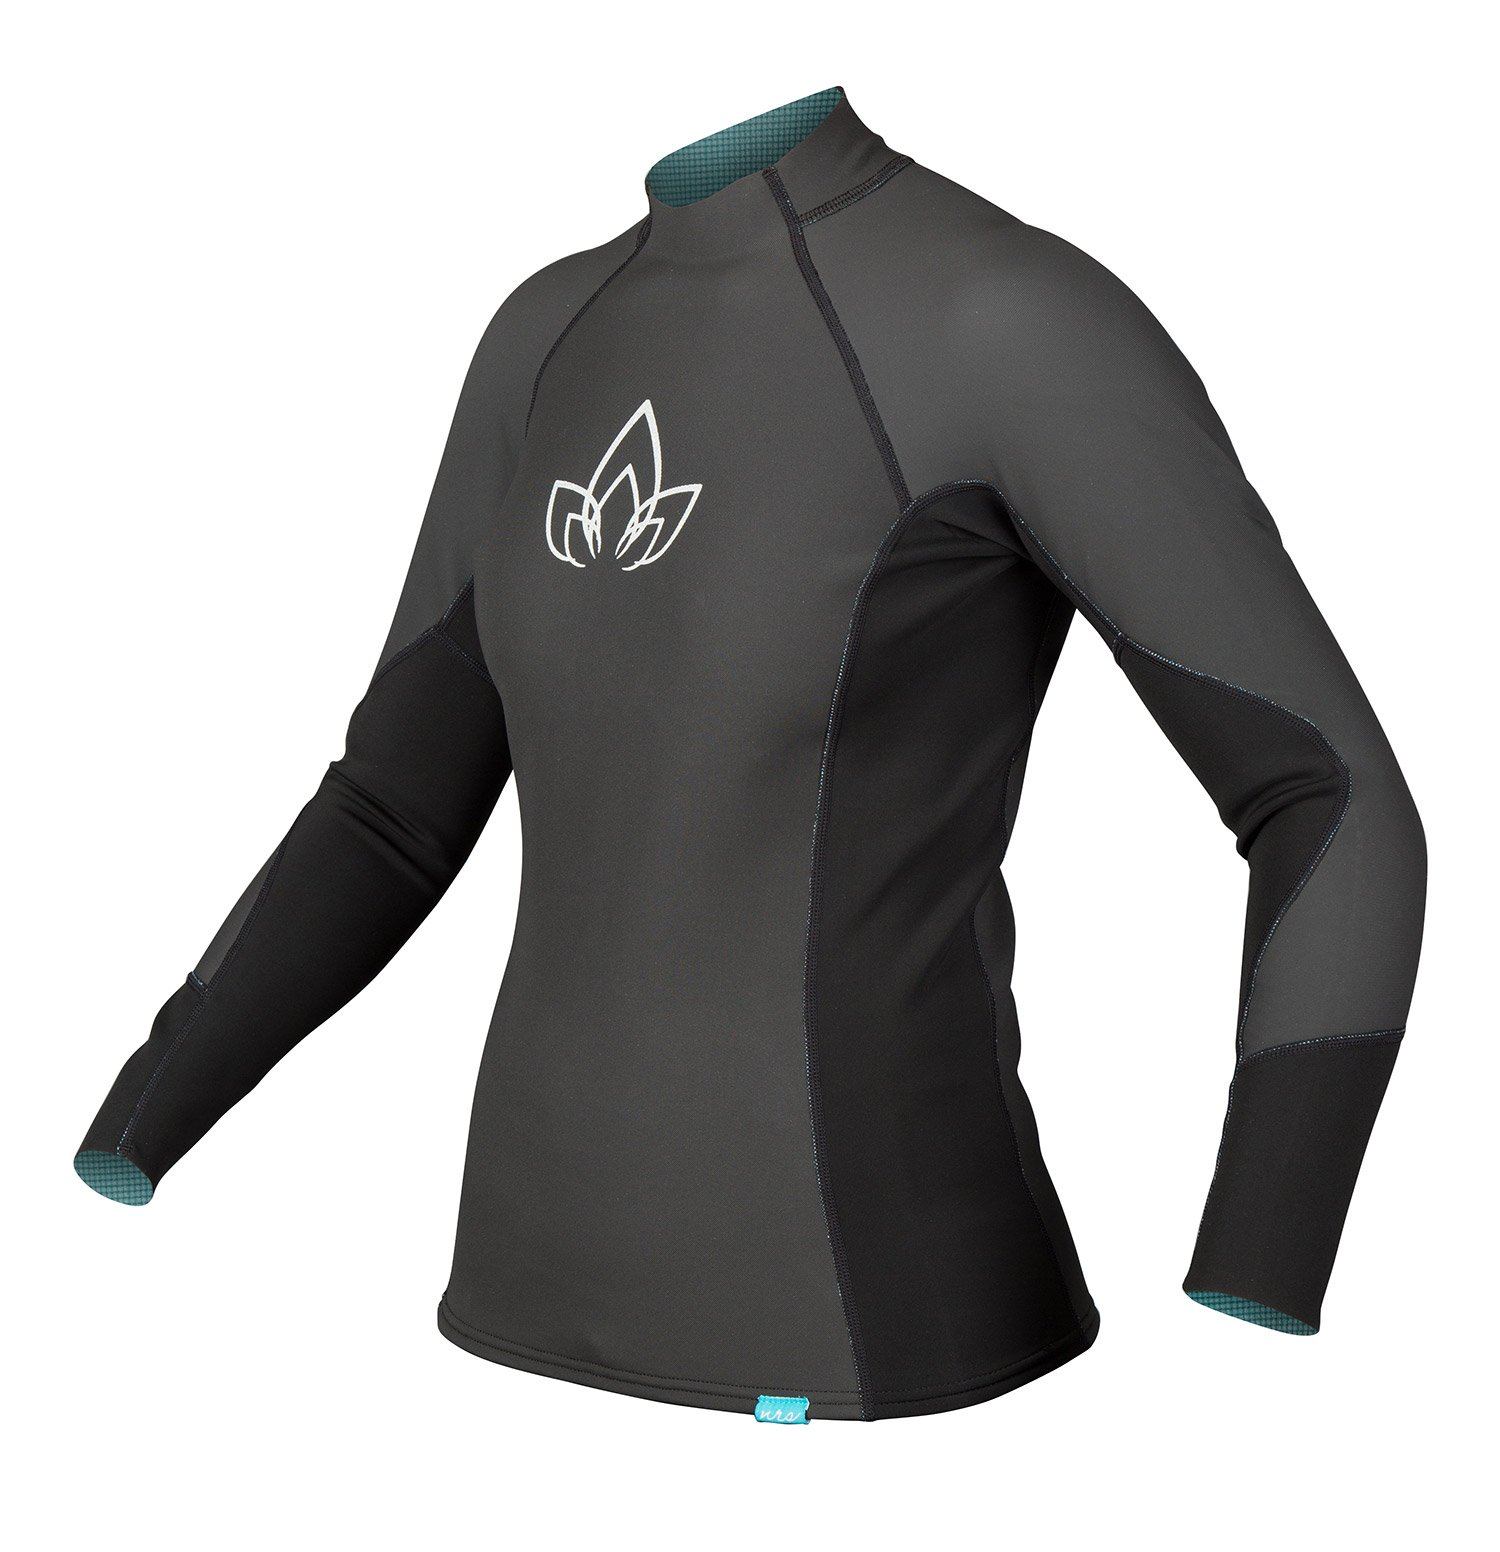 NRS Women's HydroSkin 1.0 Black L by NRS